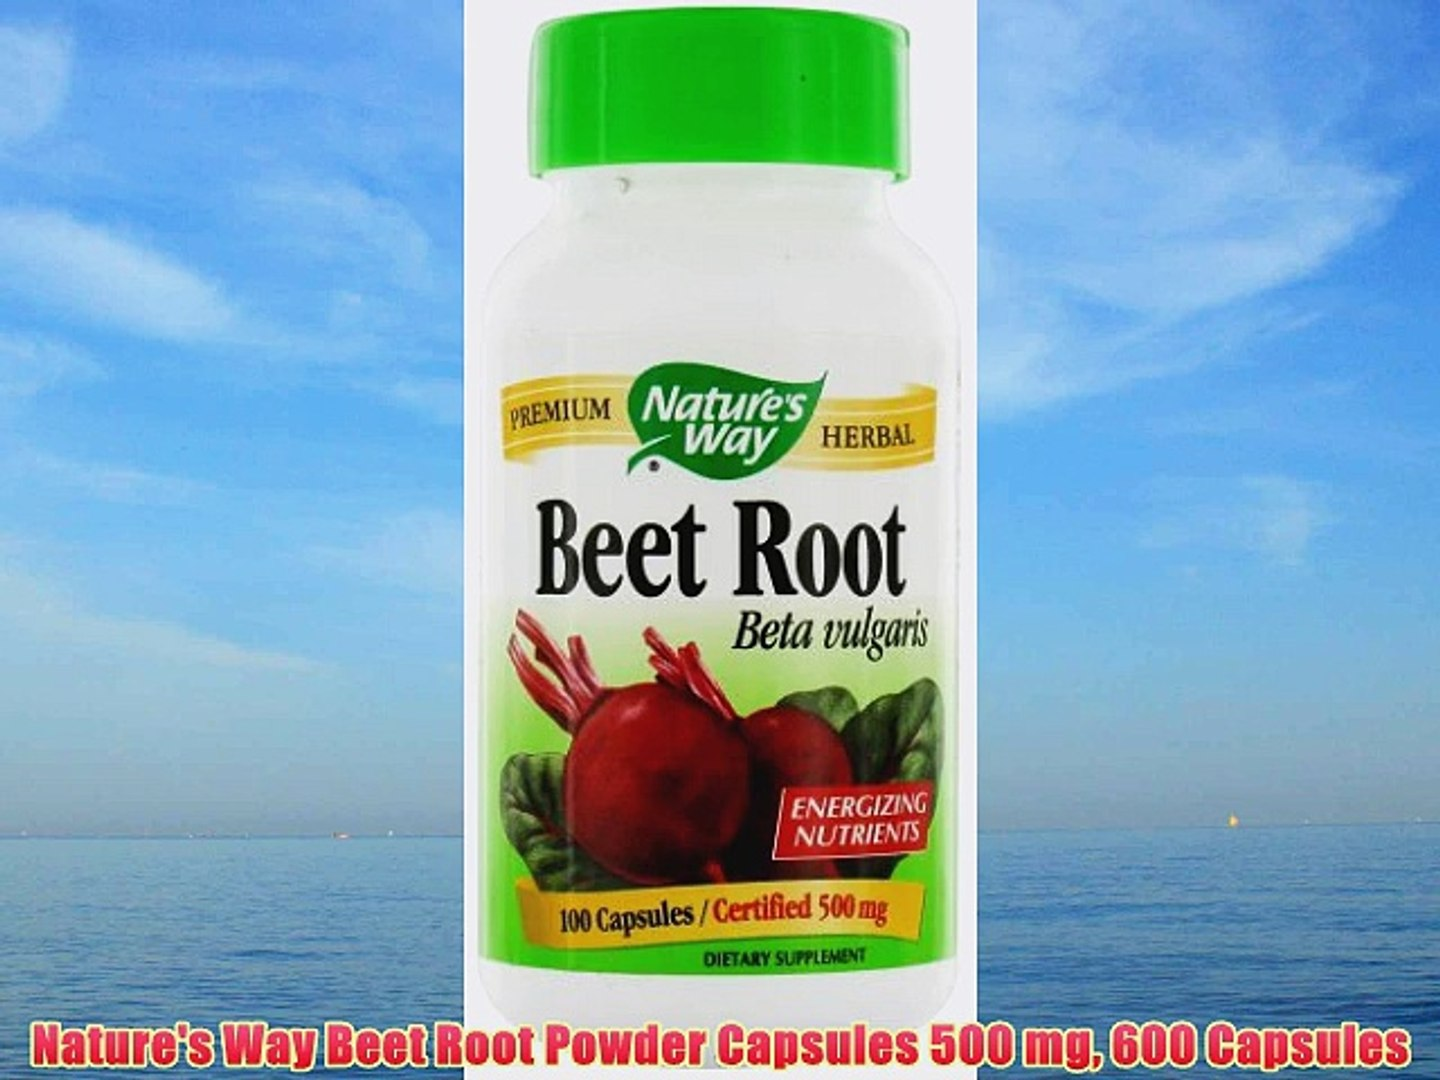 Nature's Way Beet Root Powder Capsules 500 mg 600 Capsules